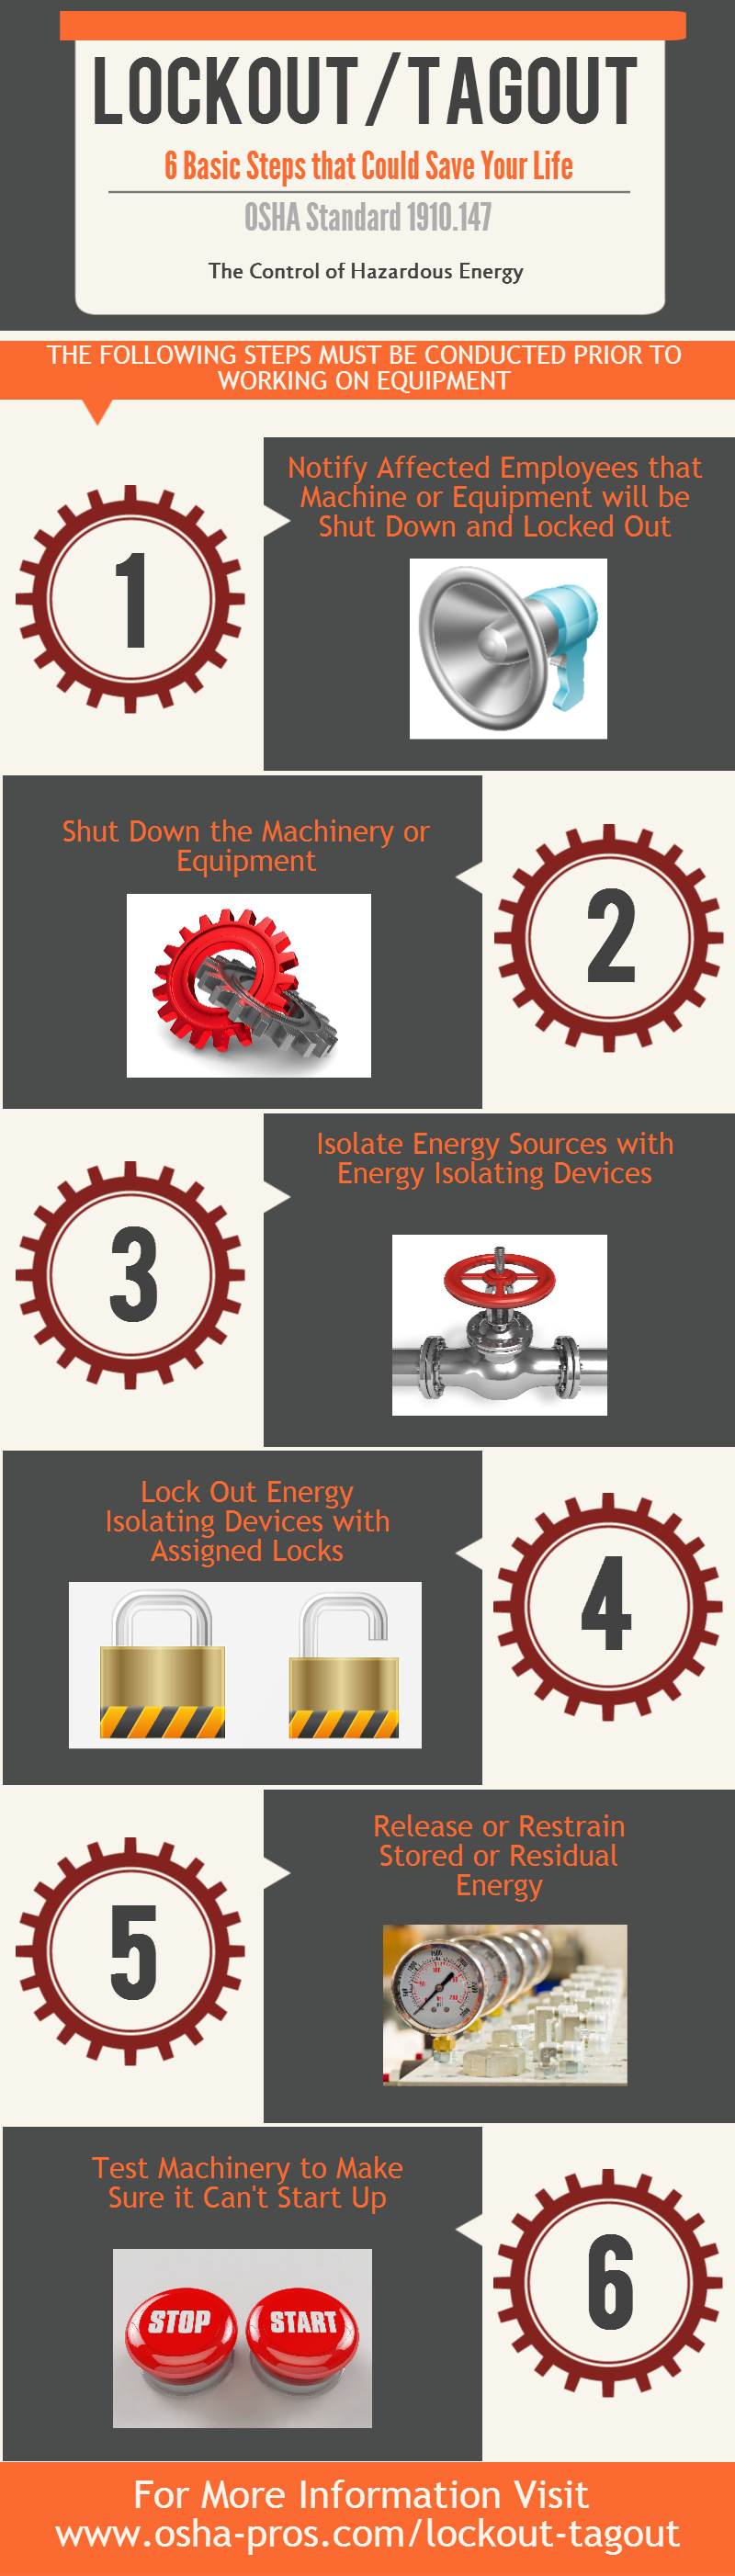 Control of Hazardous Energy Lockout Tagout Infographic